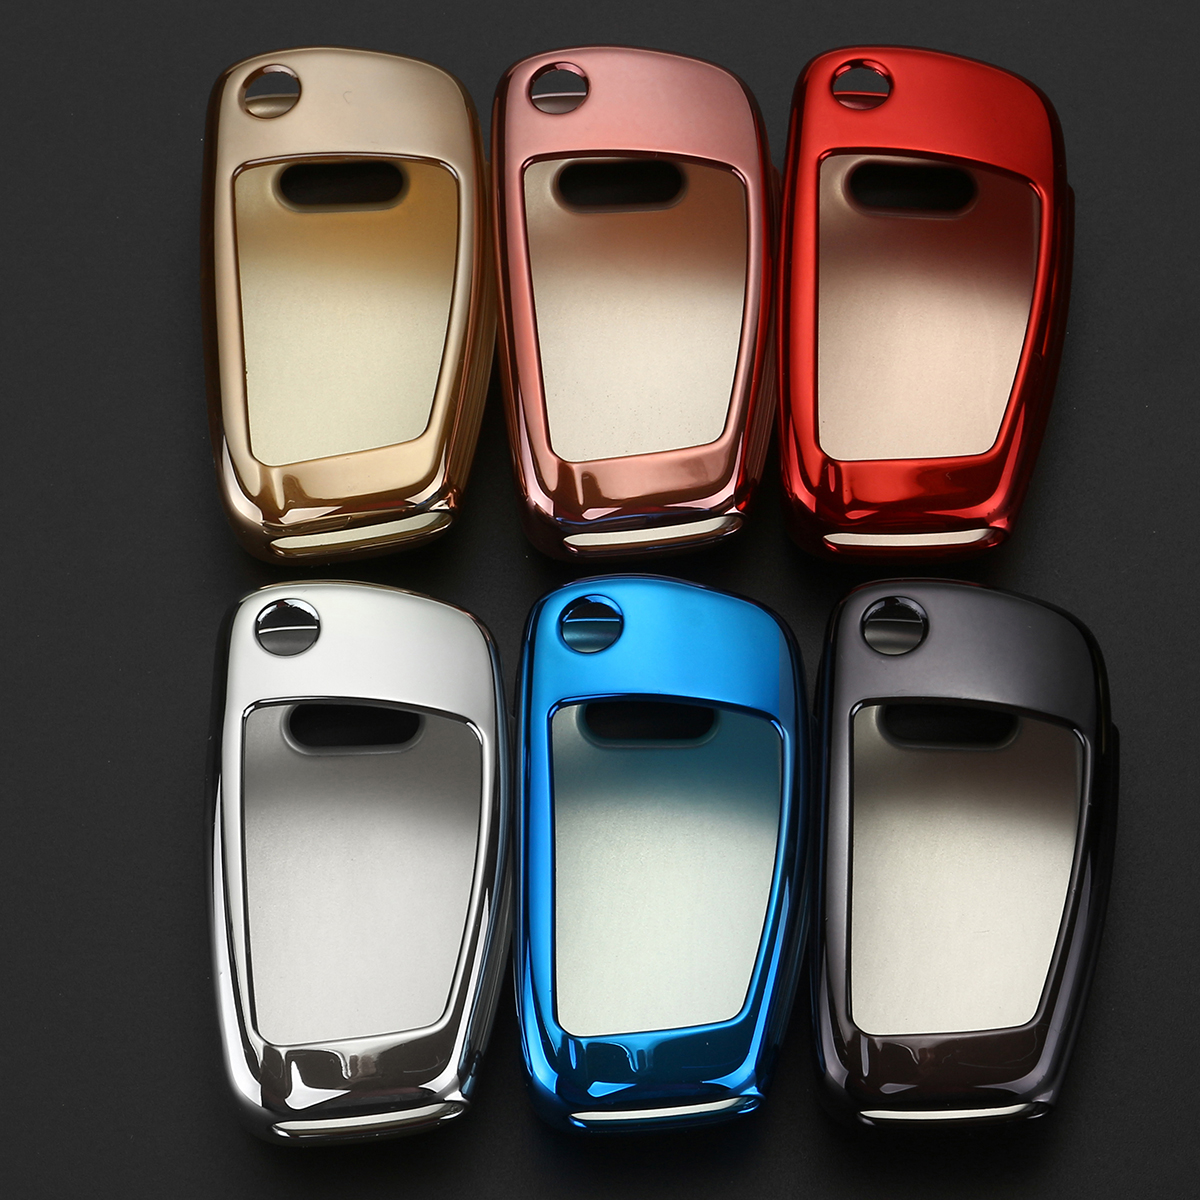 TPU Car Styling Soft TPU Auto Key Protection Cover Case For Audi C6 A7 A8 R8 A1 A3 A4 A5 Q7 A6 C5 Car Holder Shell Car-Styling 1 pair white auto car led license plate light lamp for audi a3 a4 a6 a8 q7 rs4 b6 c6 car styling 18 led bulbs 6500k